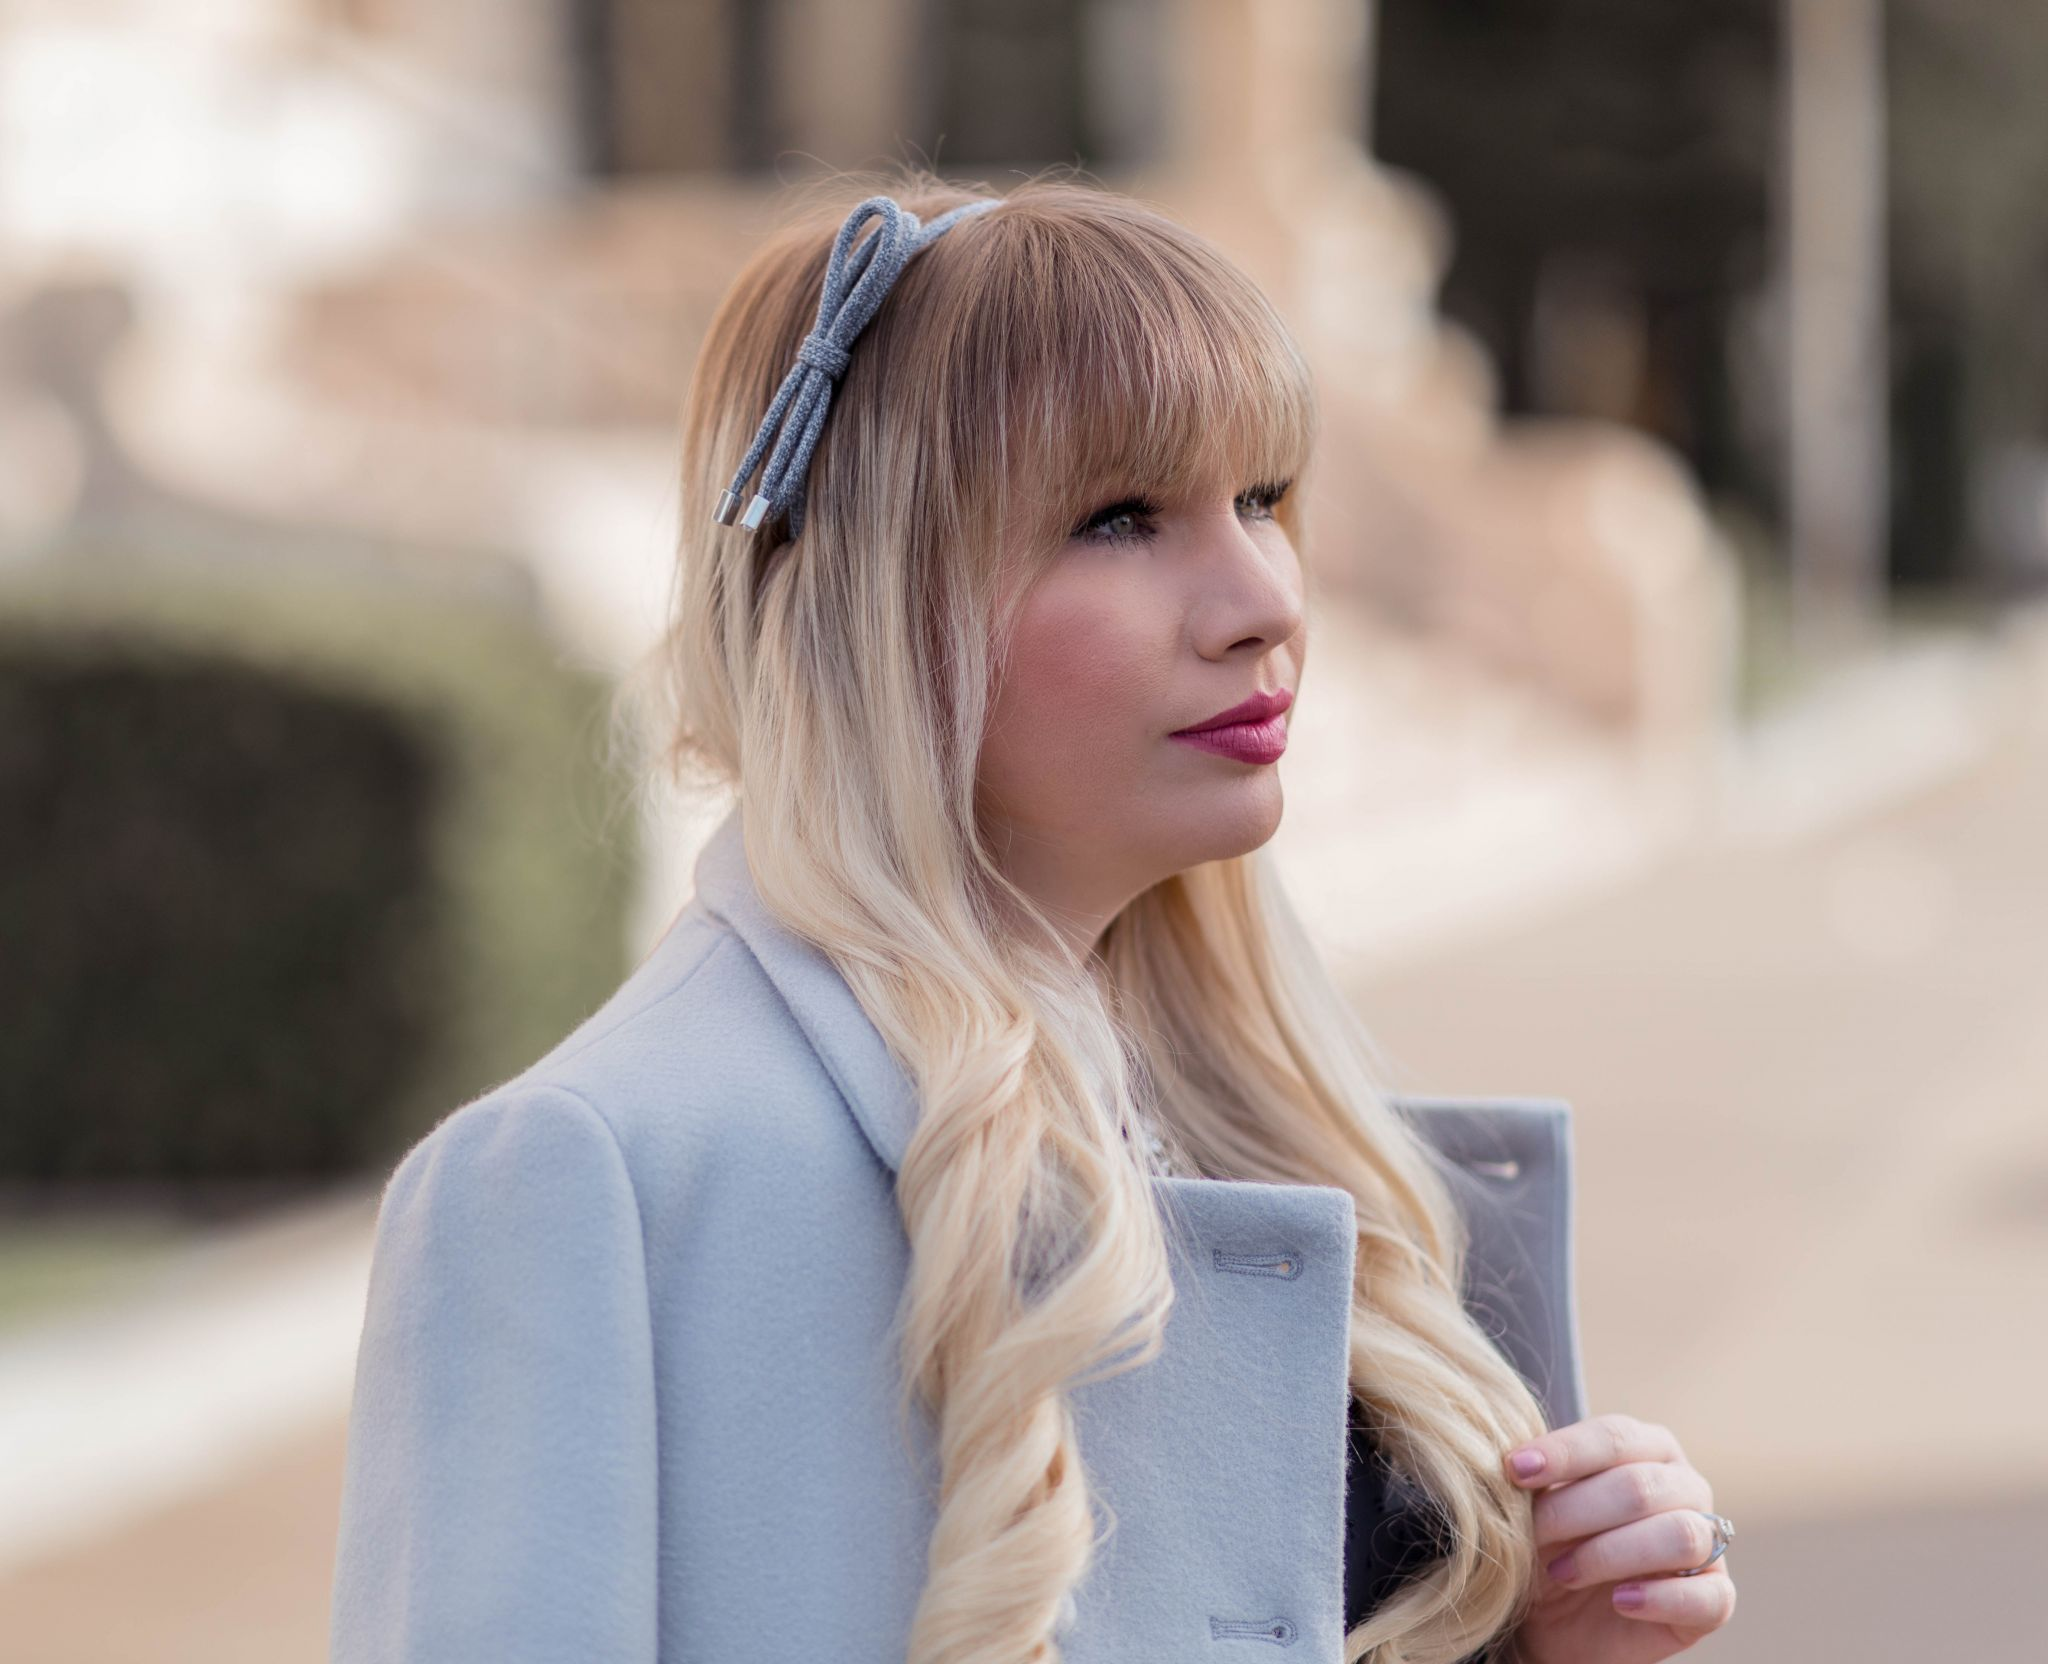 Feminine Fashion Blogger Elizabeth Hugen of Lizzie in Lace shares her girly hair accessories collection including this blue bow headband